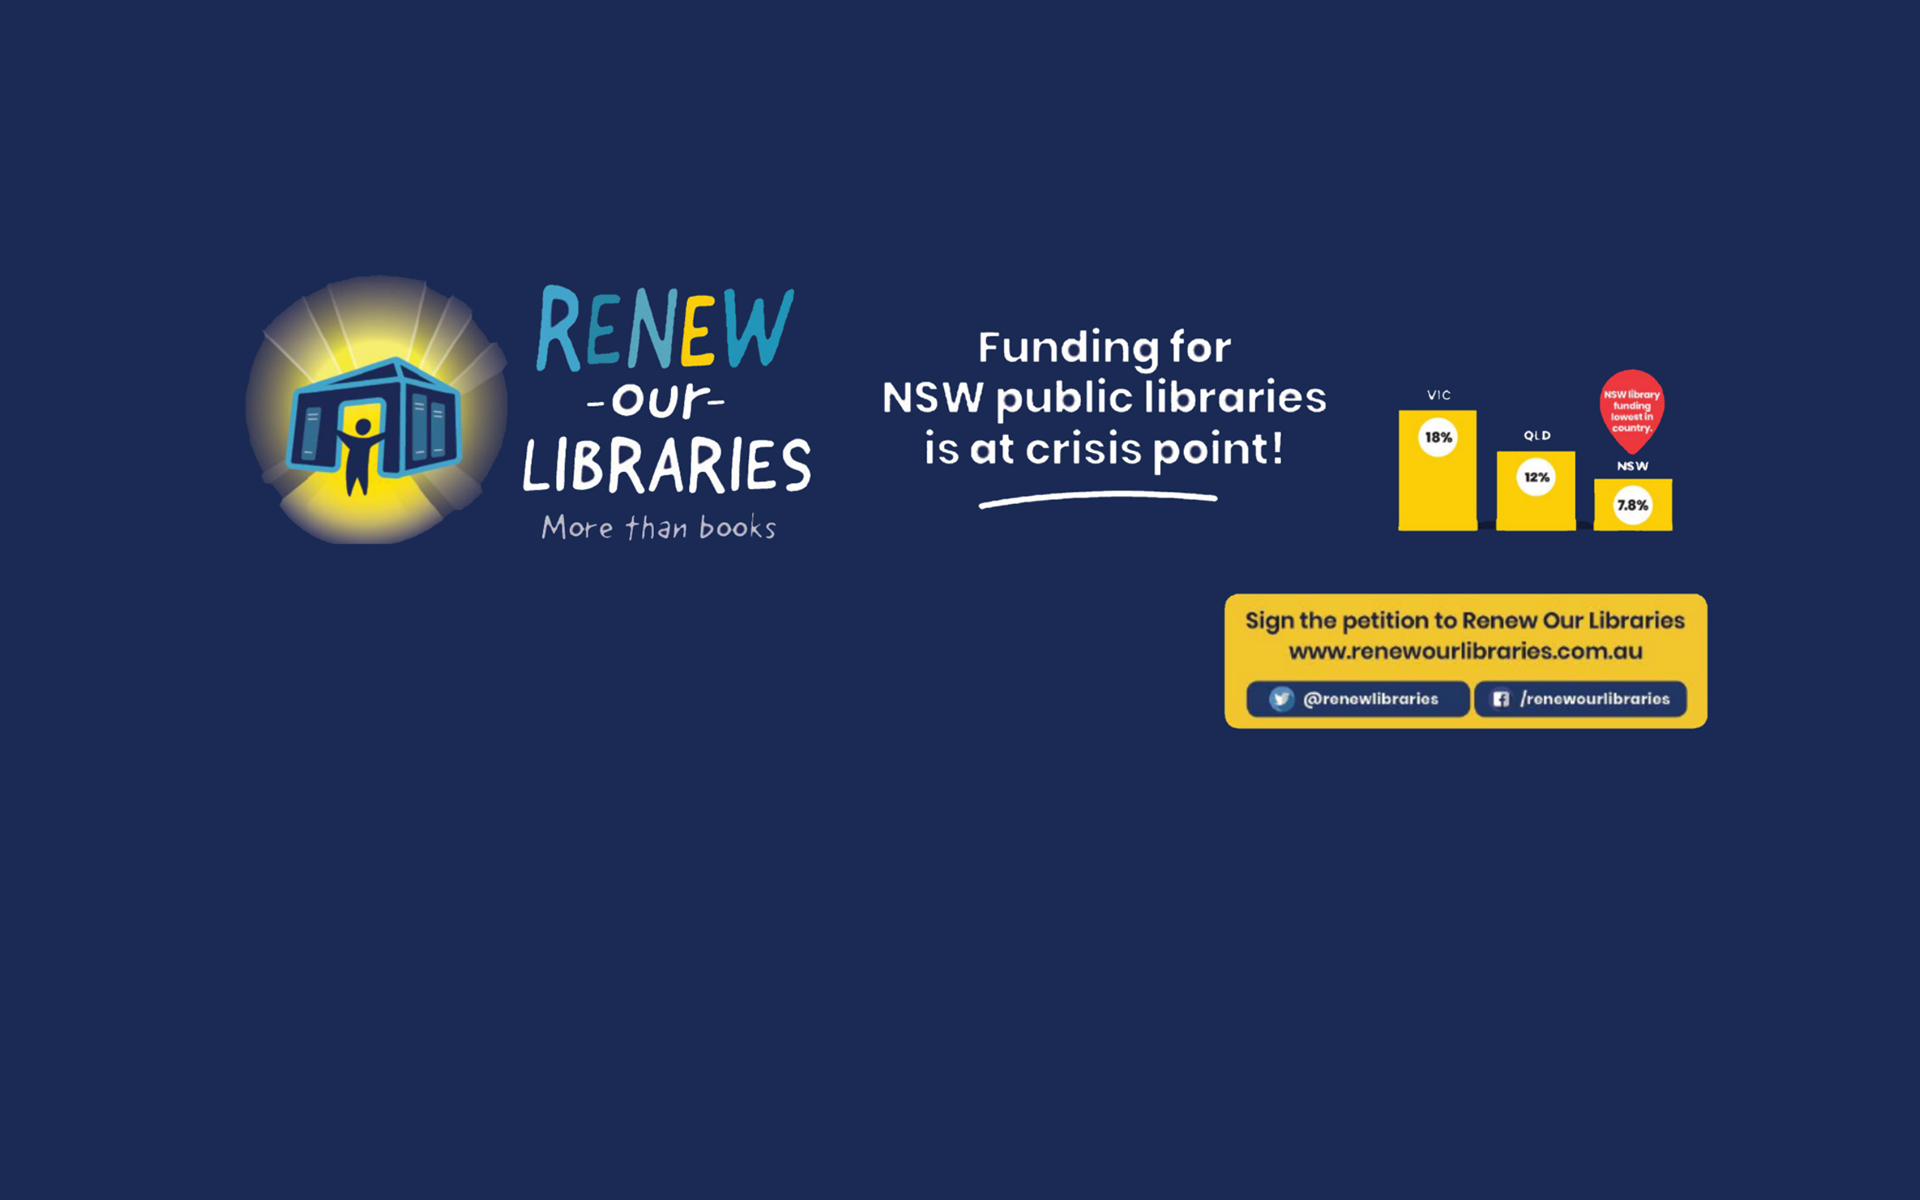 Renew Our Libraries